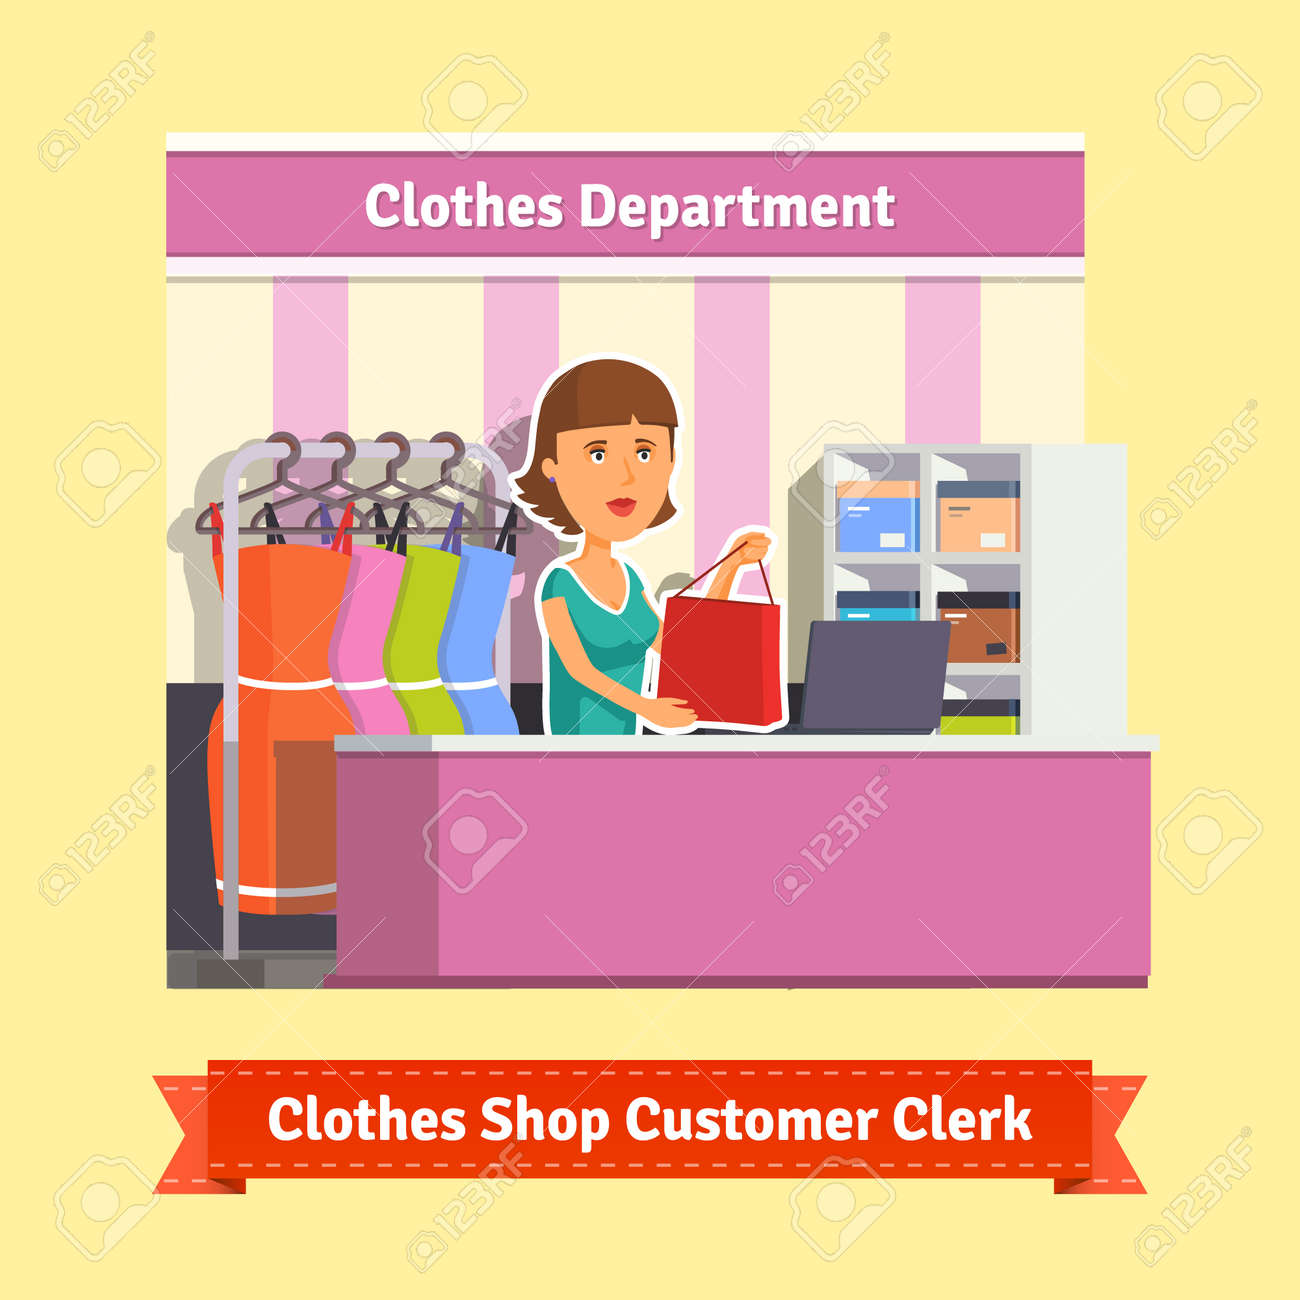 s clerk working customers at the clothes store or s clerk working customers at the clothes store or department pretty w shop assistant